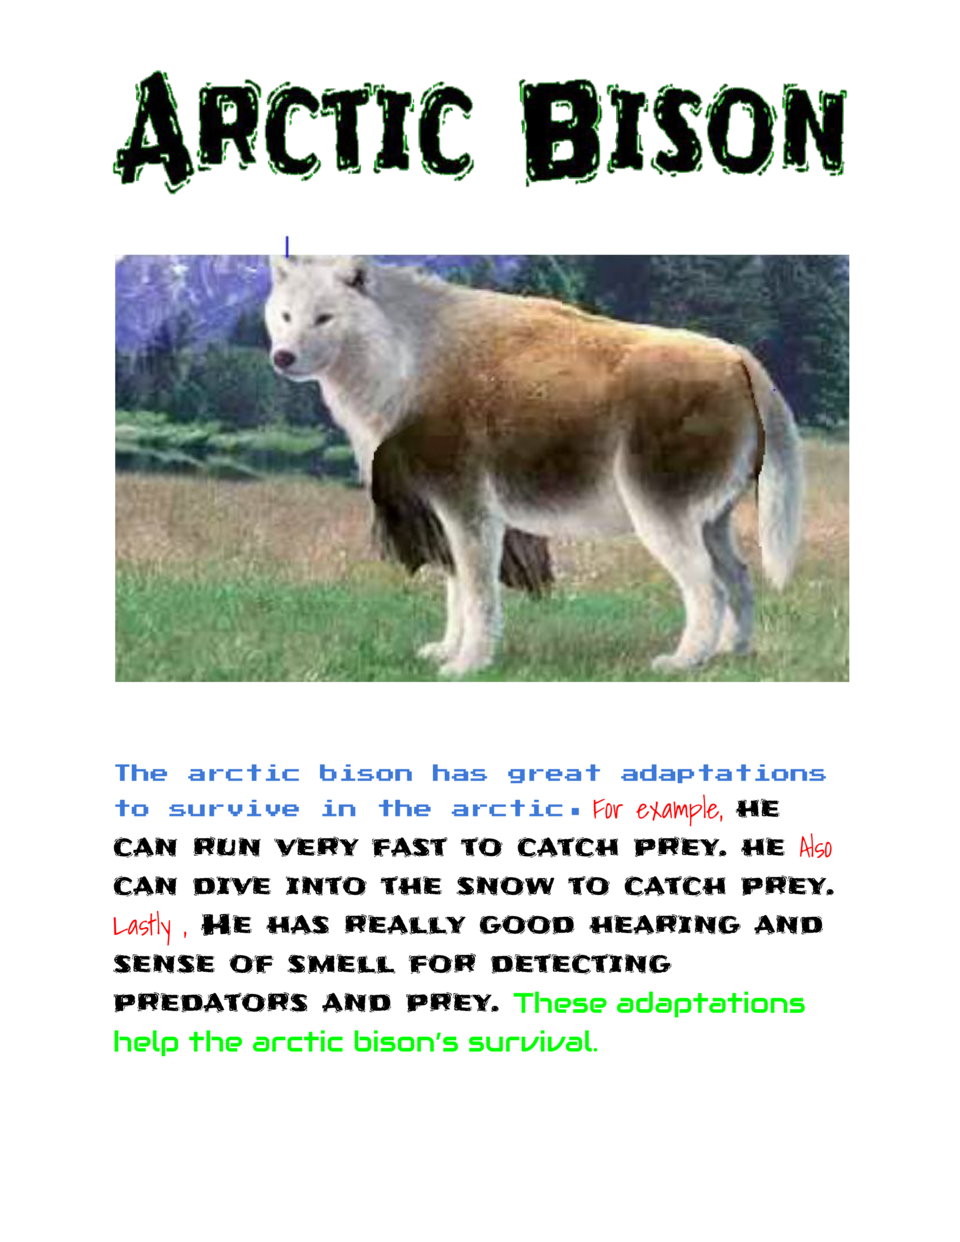 The  arctic  bison  has  great  adaptations  example,    e h can run very fast to catch prey. he     Also...